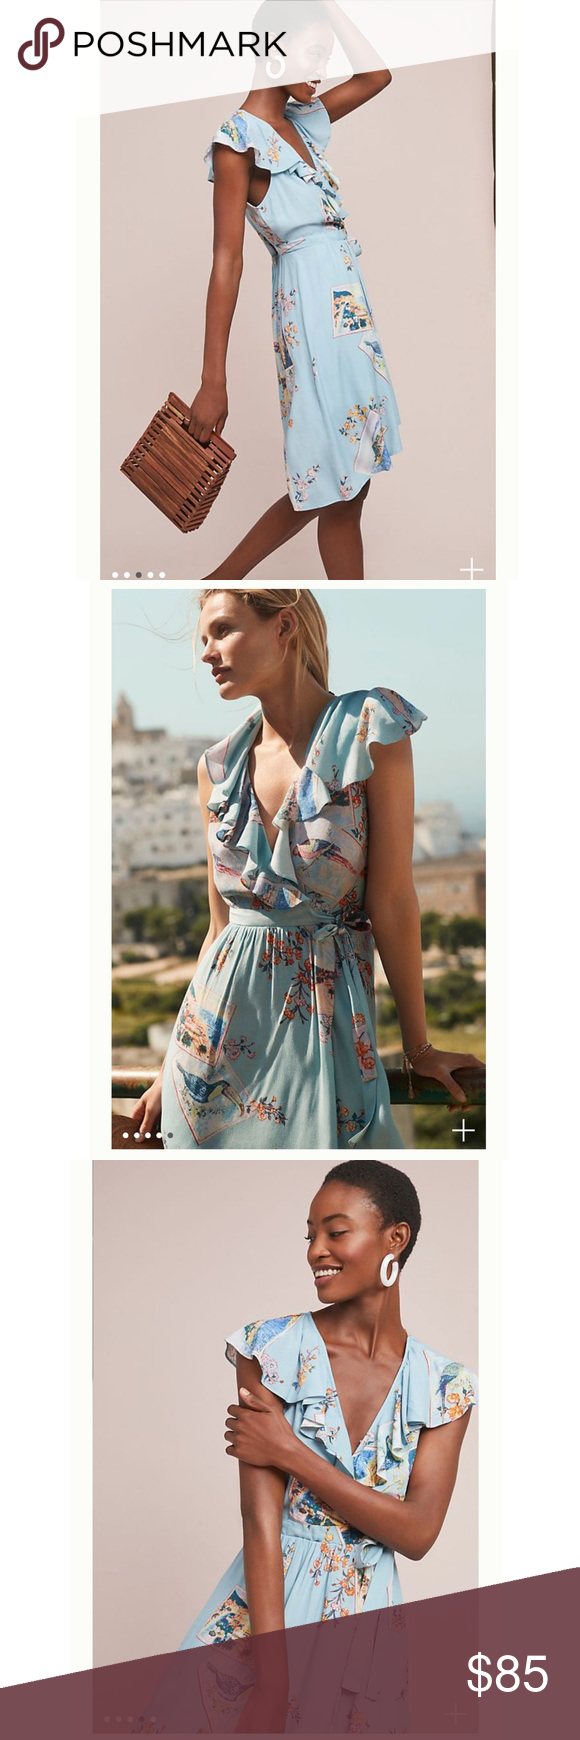 ca4a1edfae1 NWT Anthropologie maeve wrap dress New with tags Anthropologie Dresses Midi